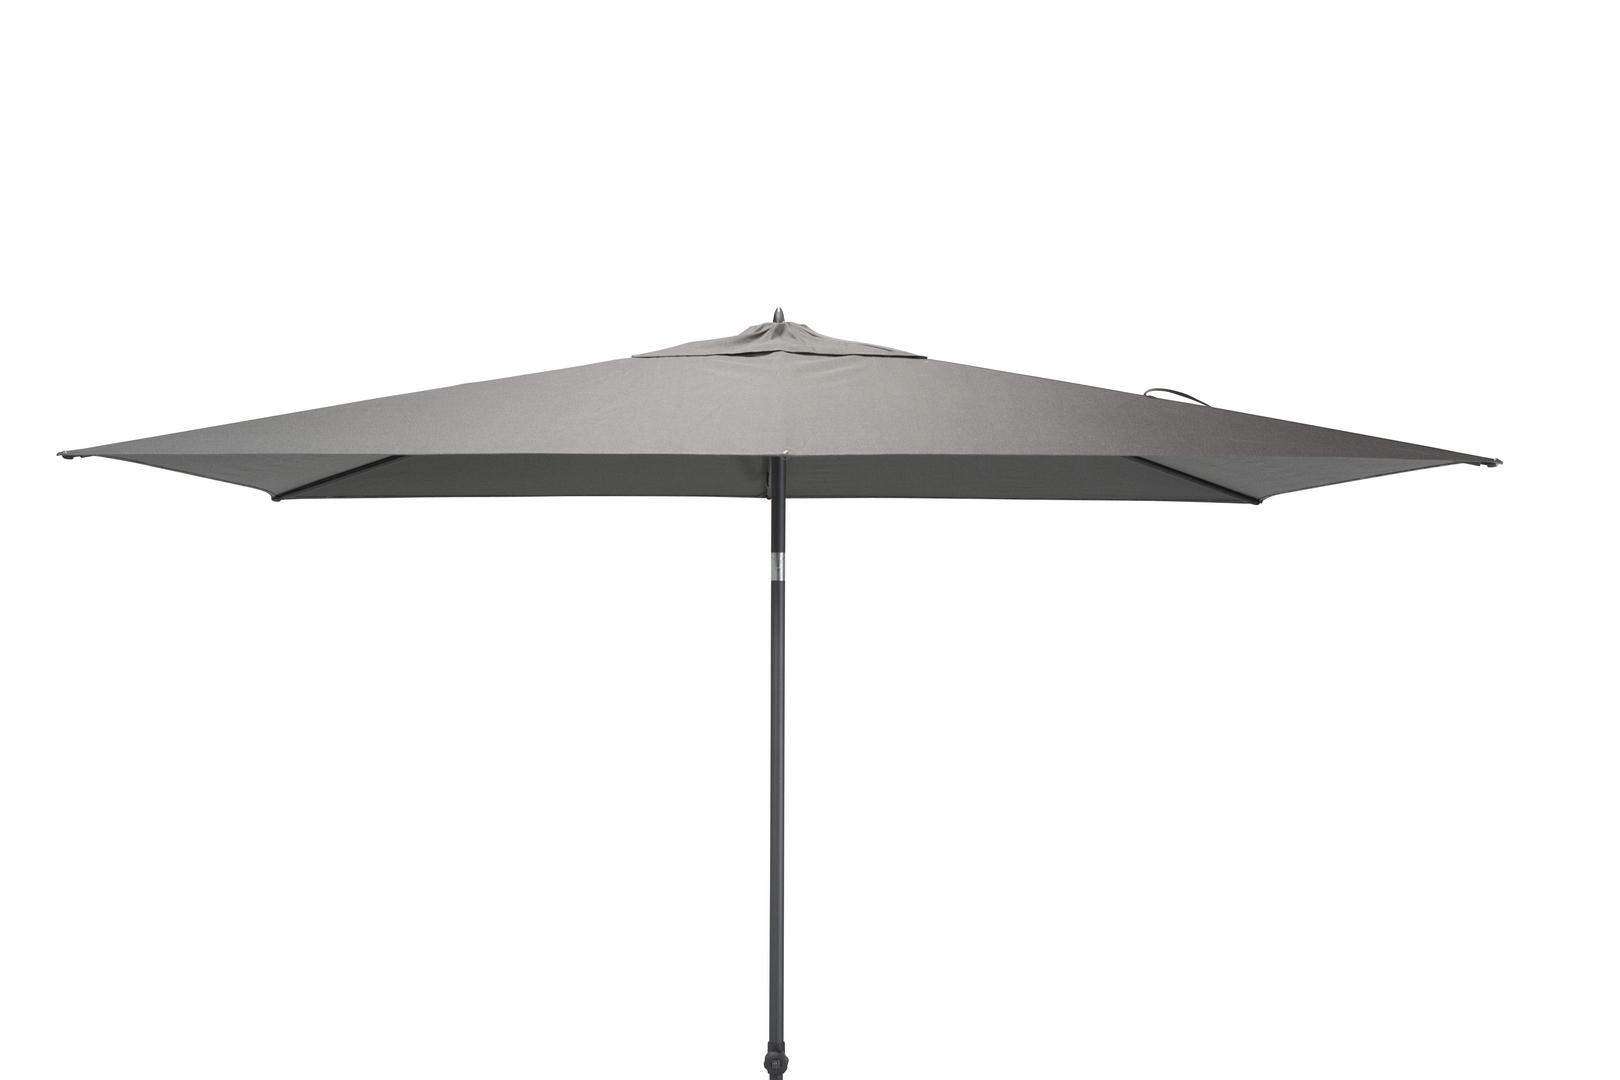 4 Seasons Outdoor Azzurro 2 x 3m parasol Charcoal